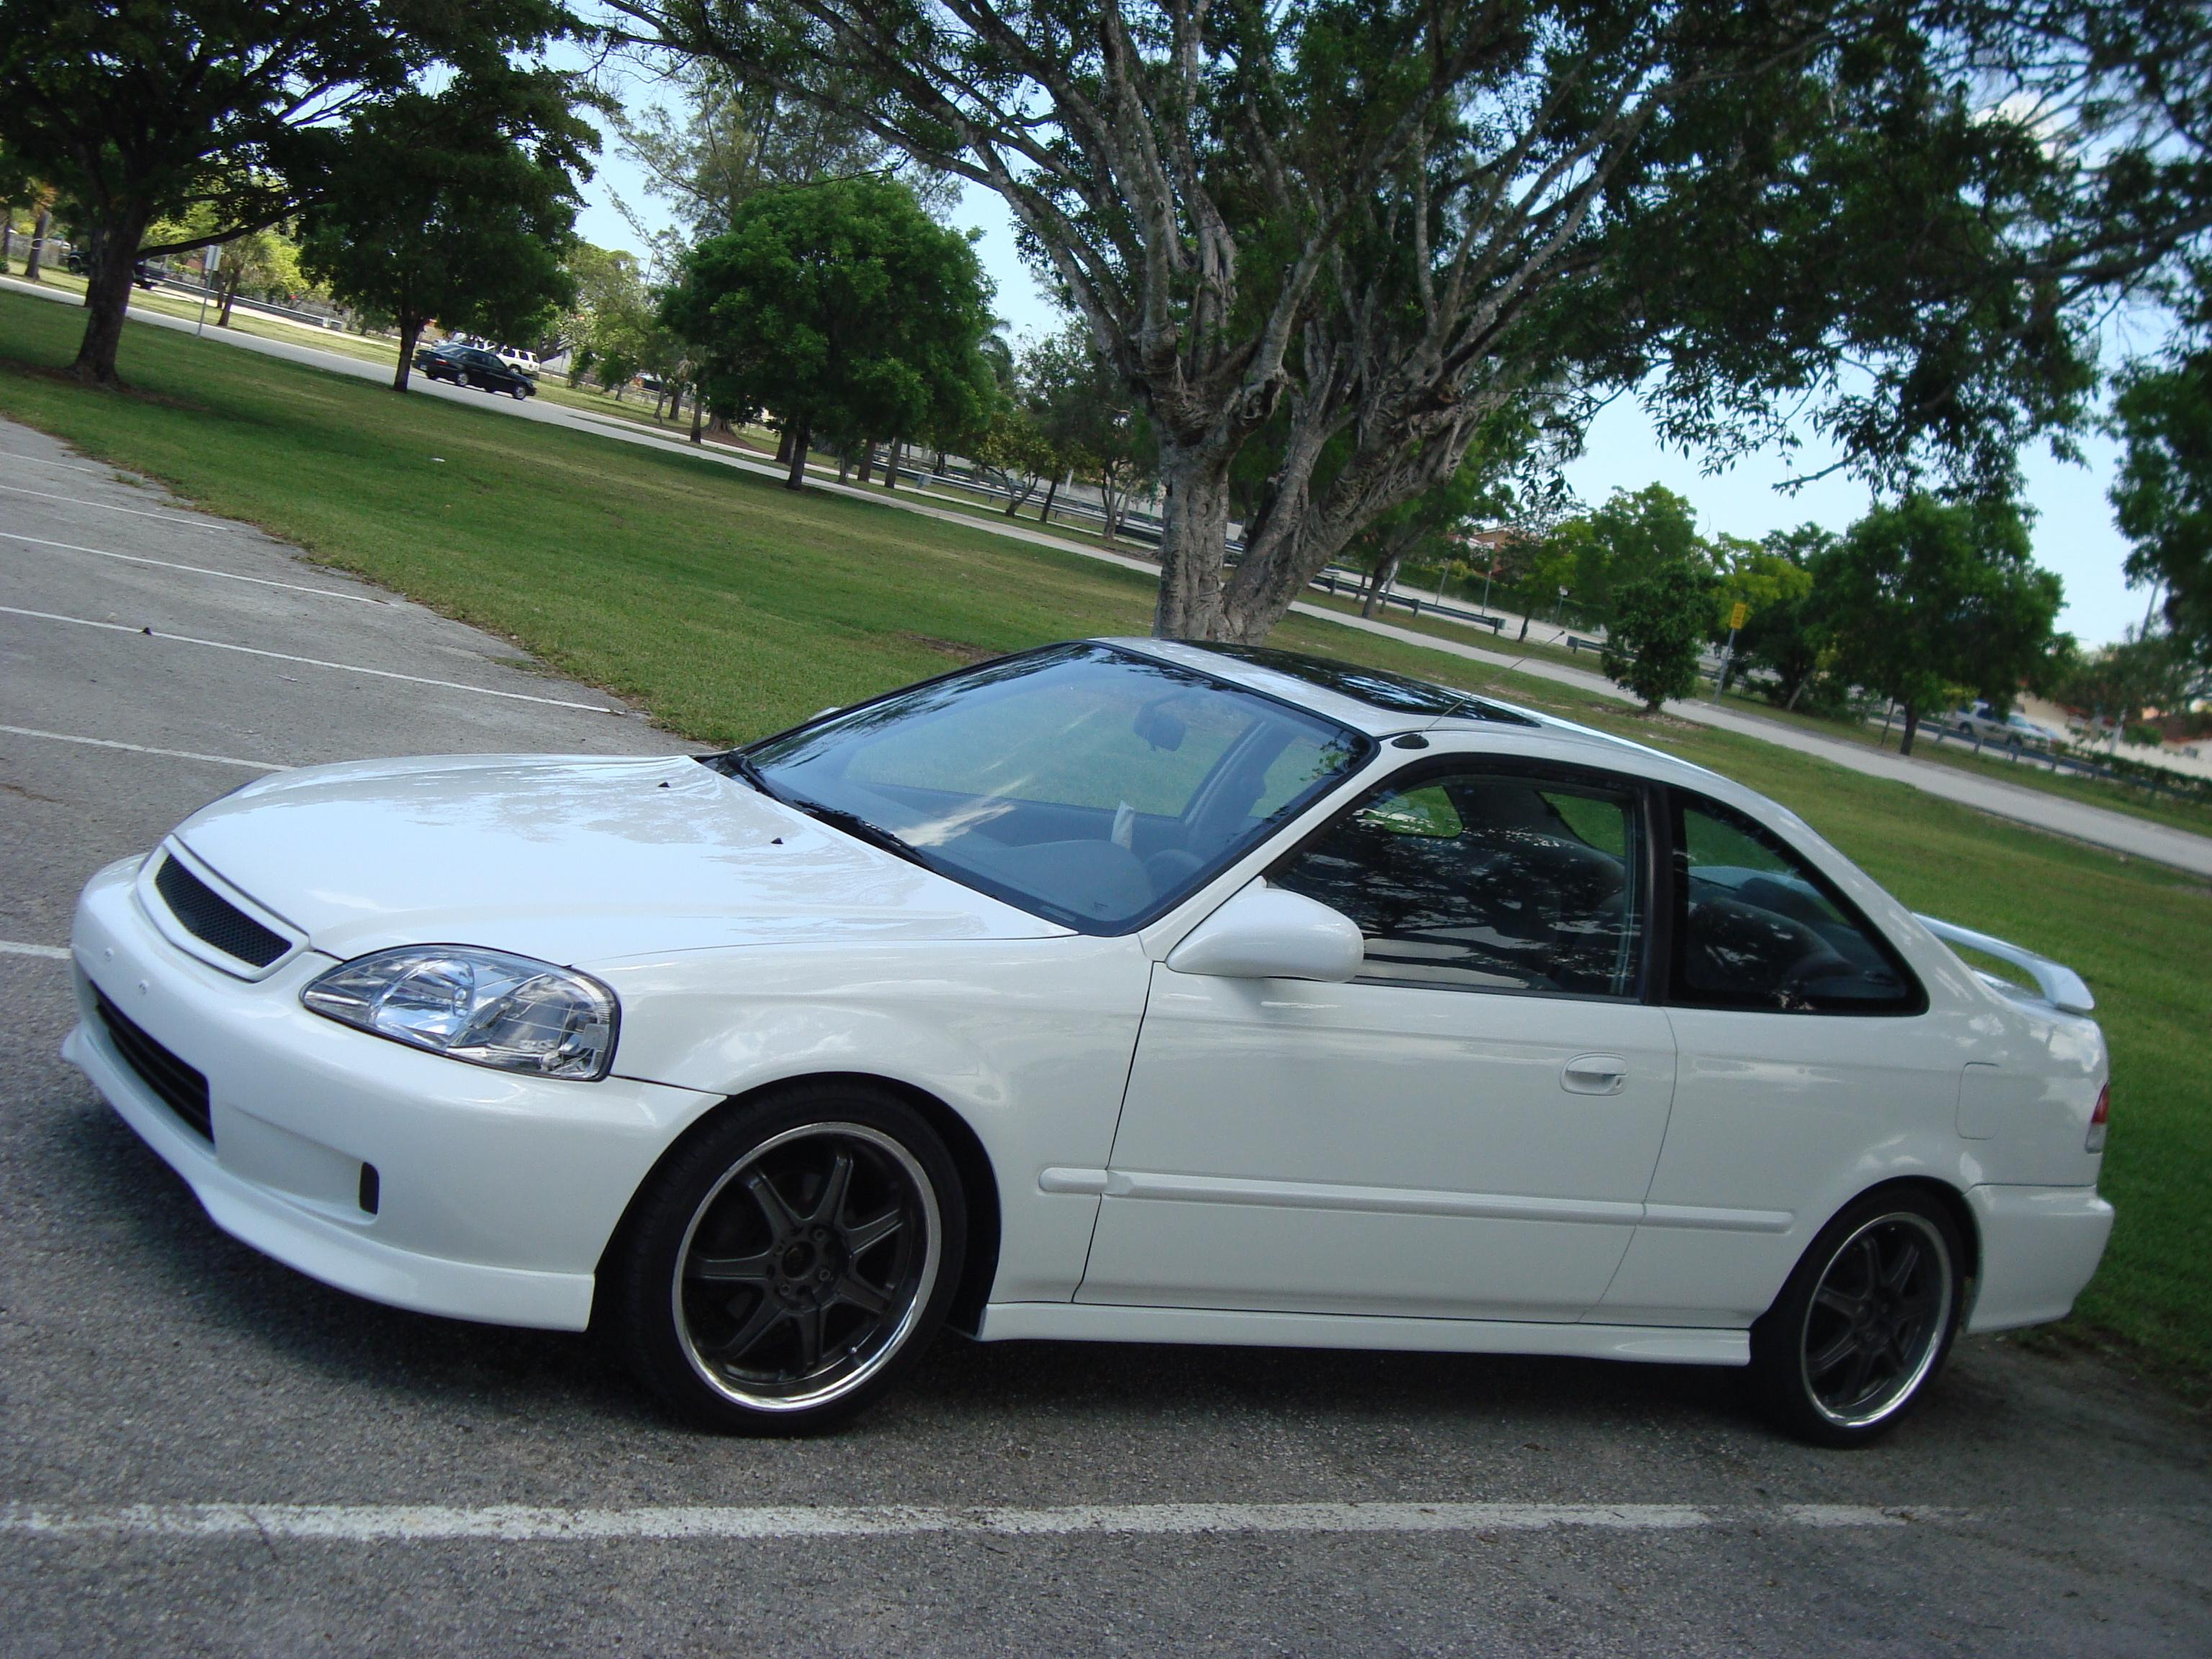 1996 Honda Civic Information And Photos Momentcar